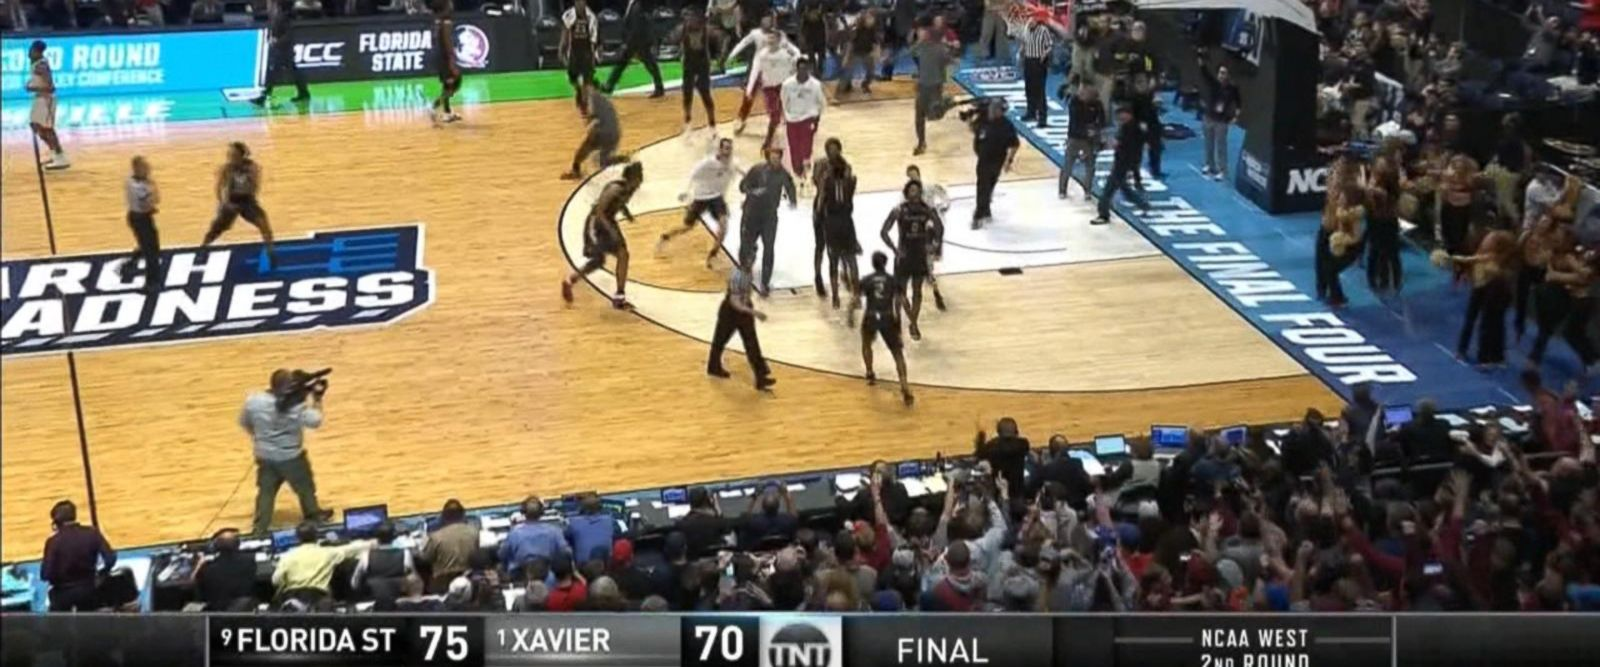 VIDEO: March Madness full of early round upsets